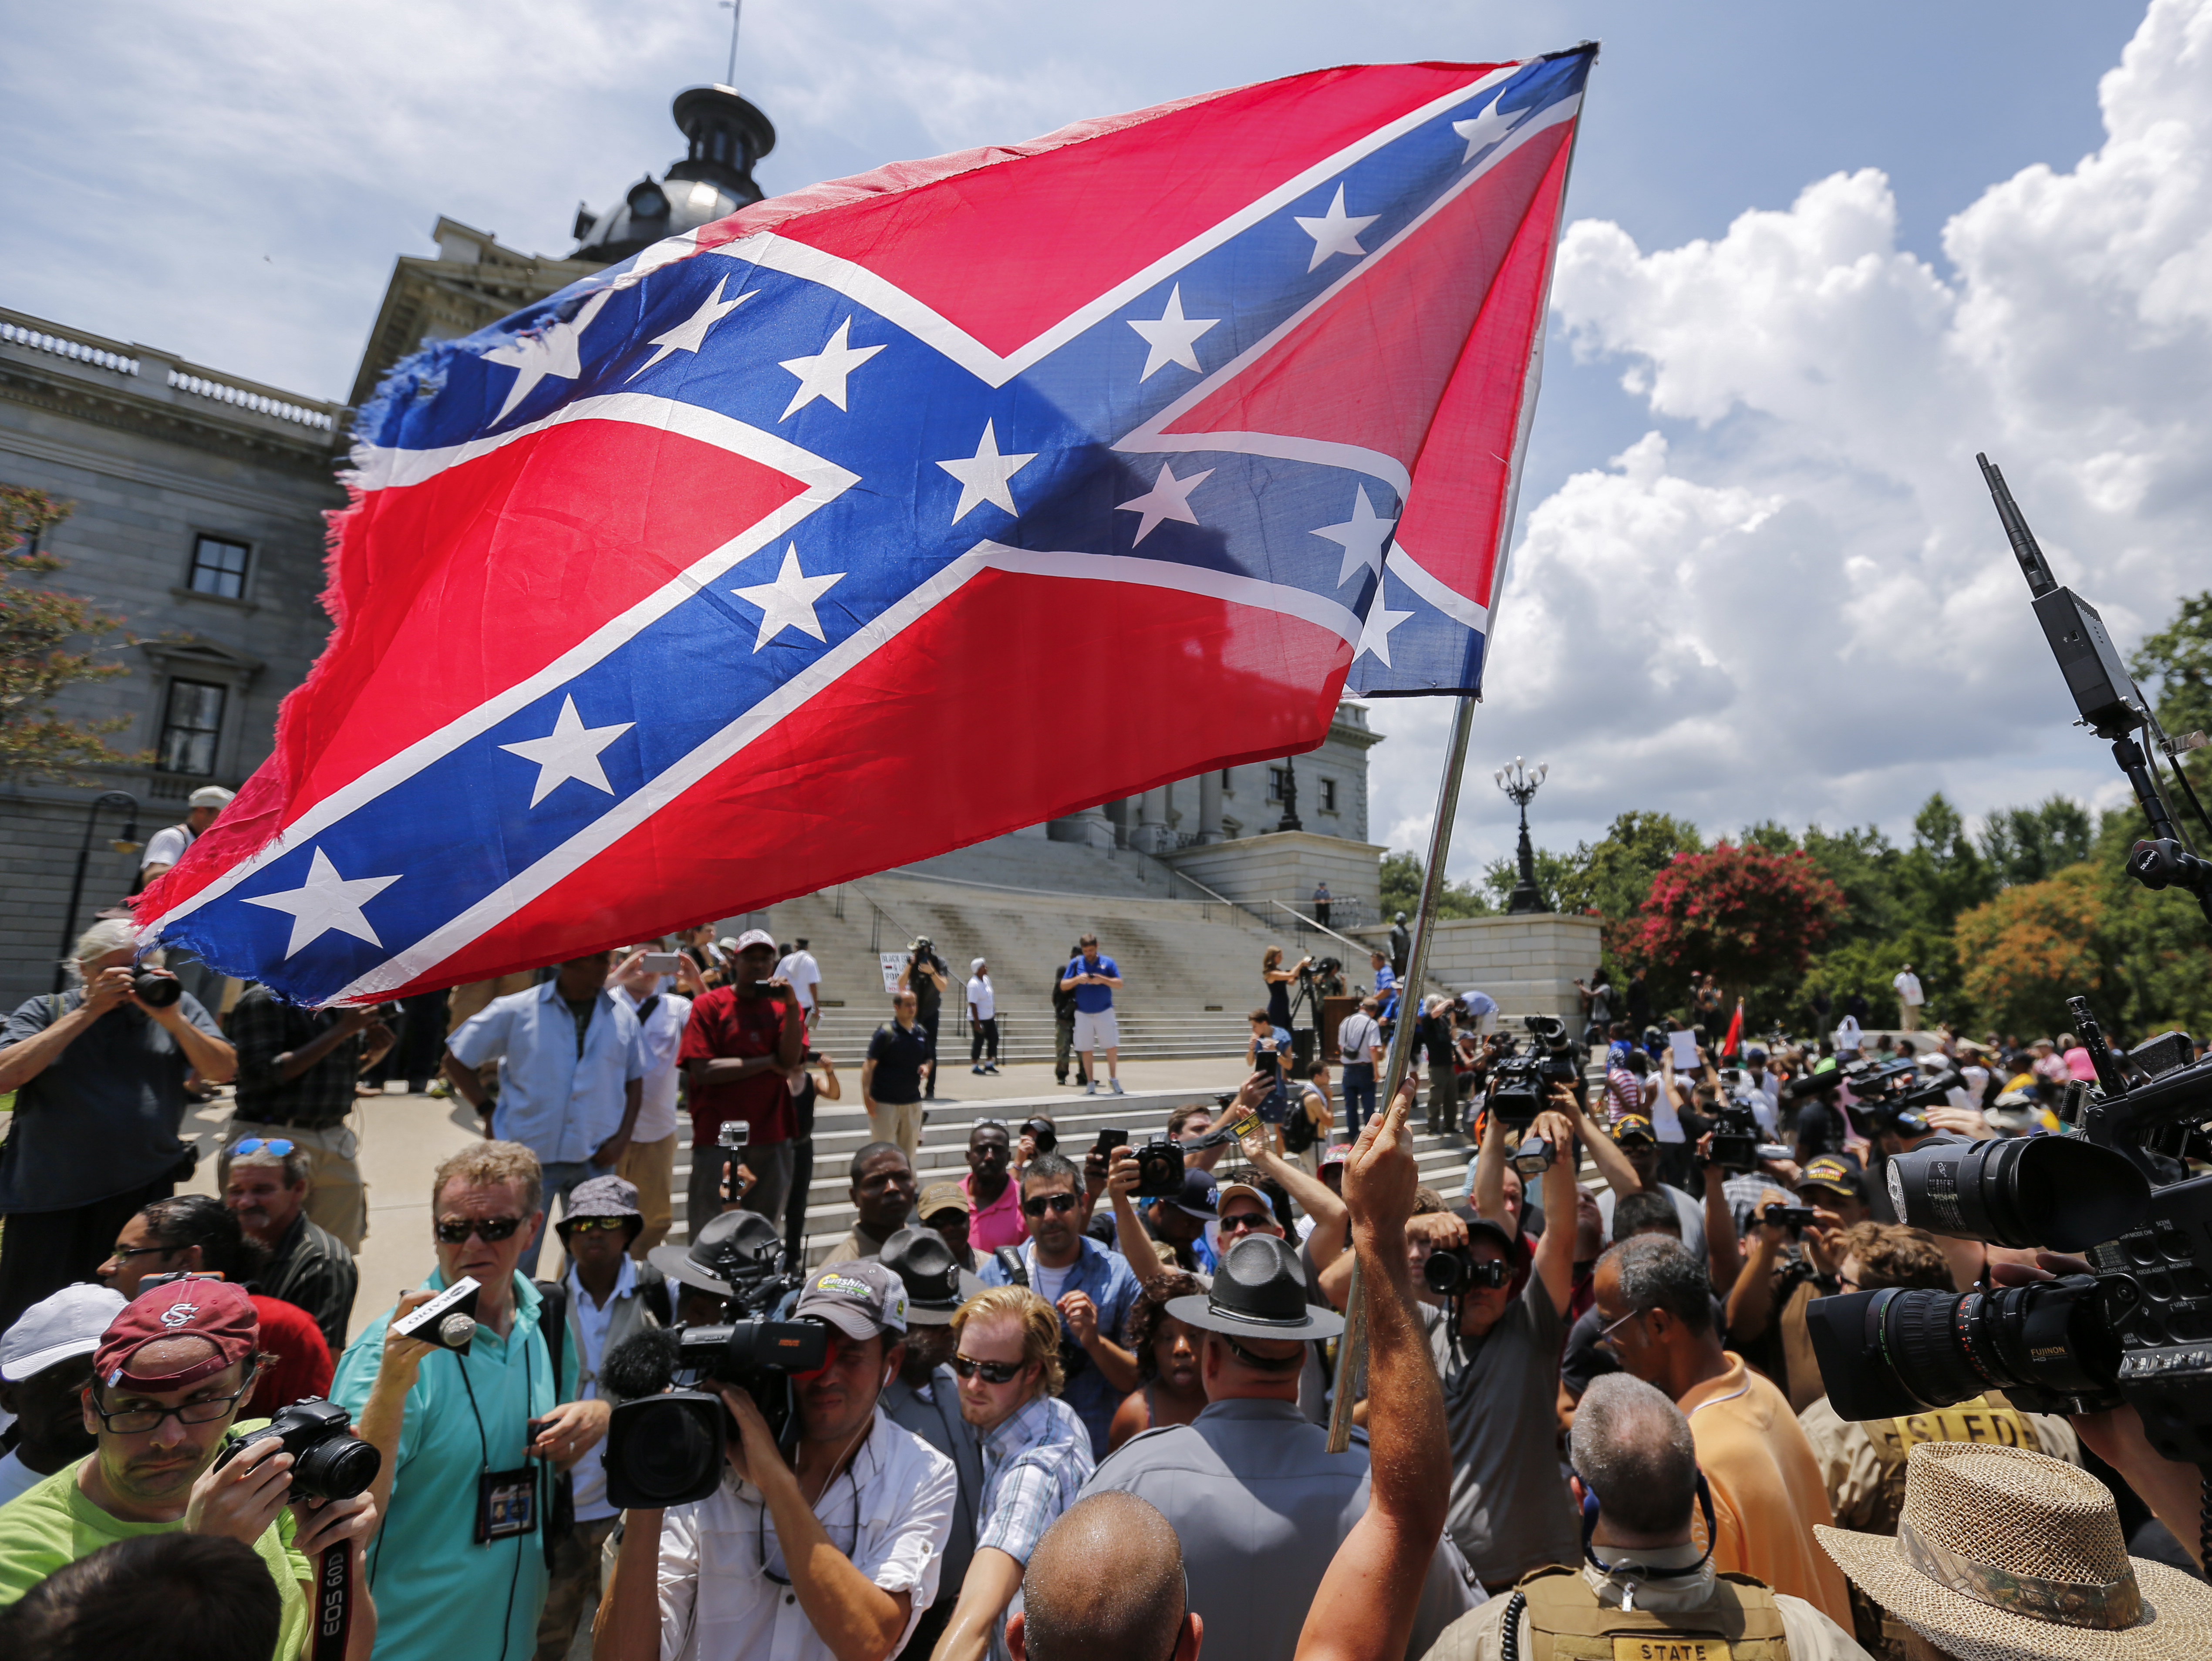 CONTROVERSY. A man displays a Confederate battle flag during New Black Panther Party and Ku Klux Klan rallies on the grounds of the South Carolina Capitol on July 18, 2015. File photo by Erik S. Lesser/EPA